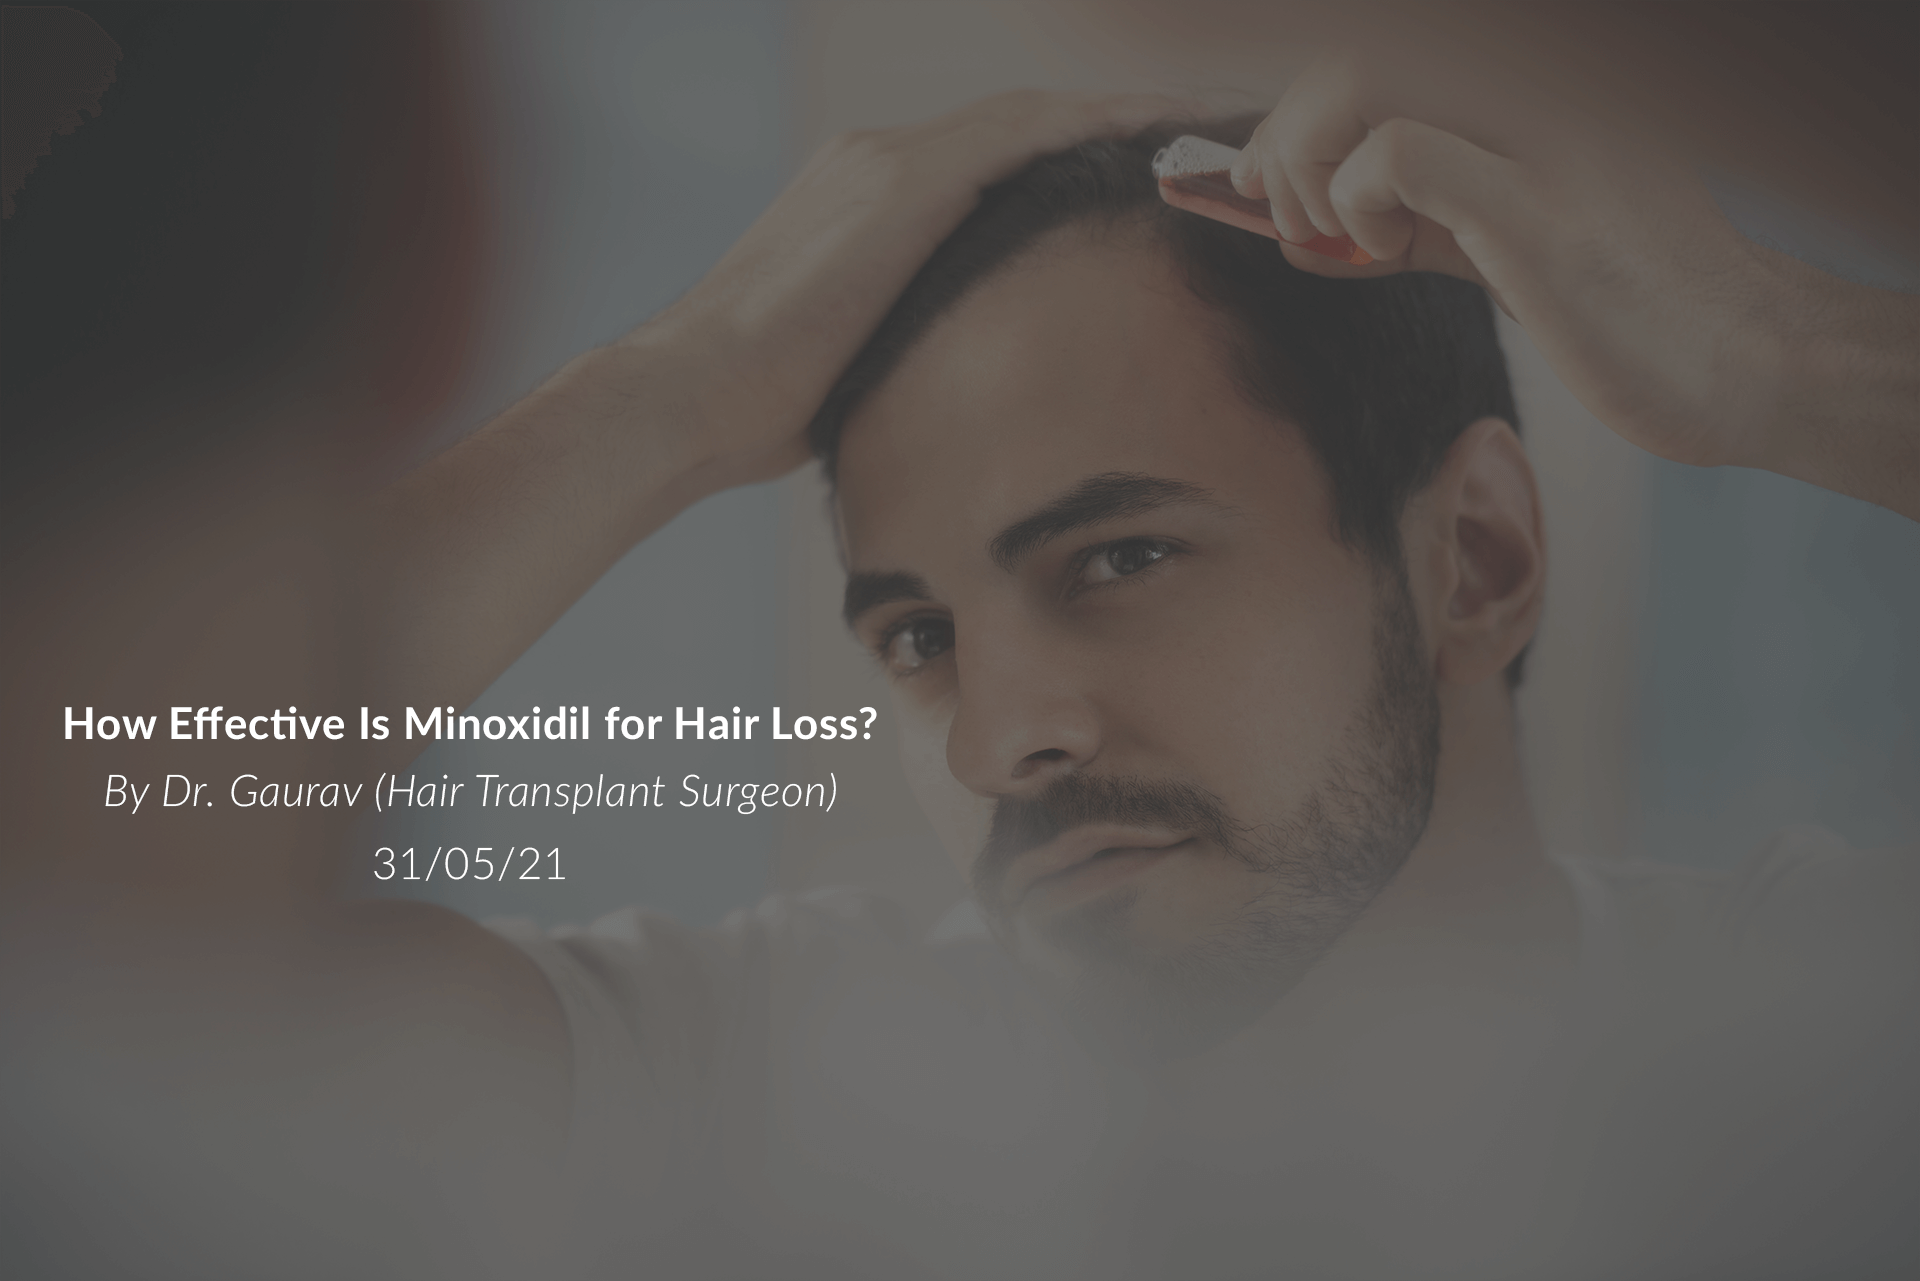 How Effective Is Minoxidil for Hair Loss?